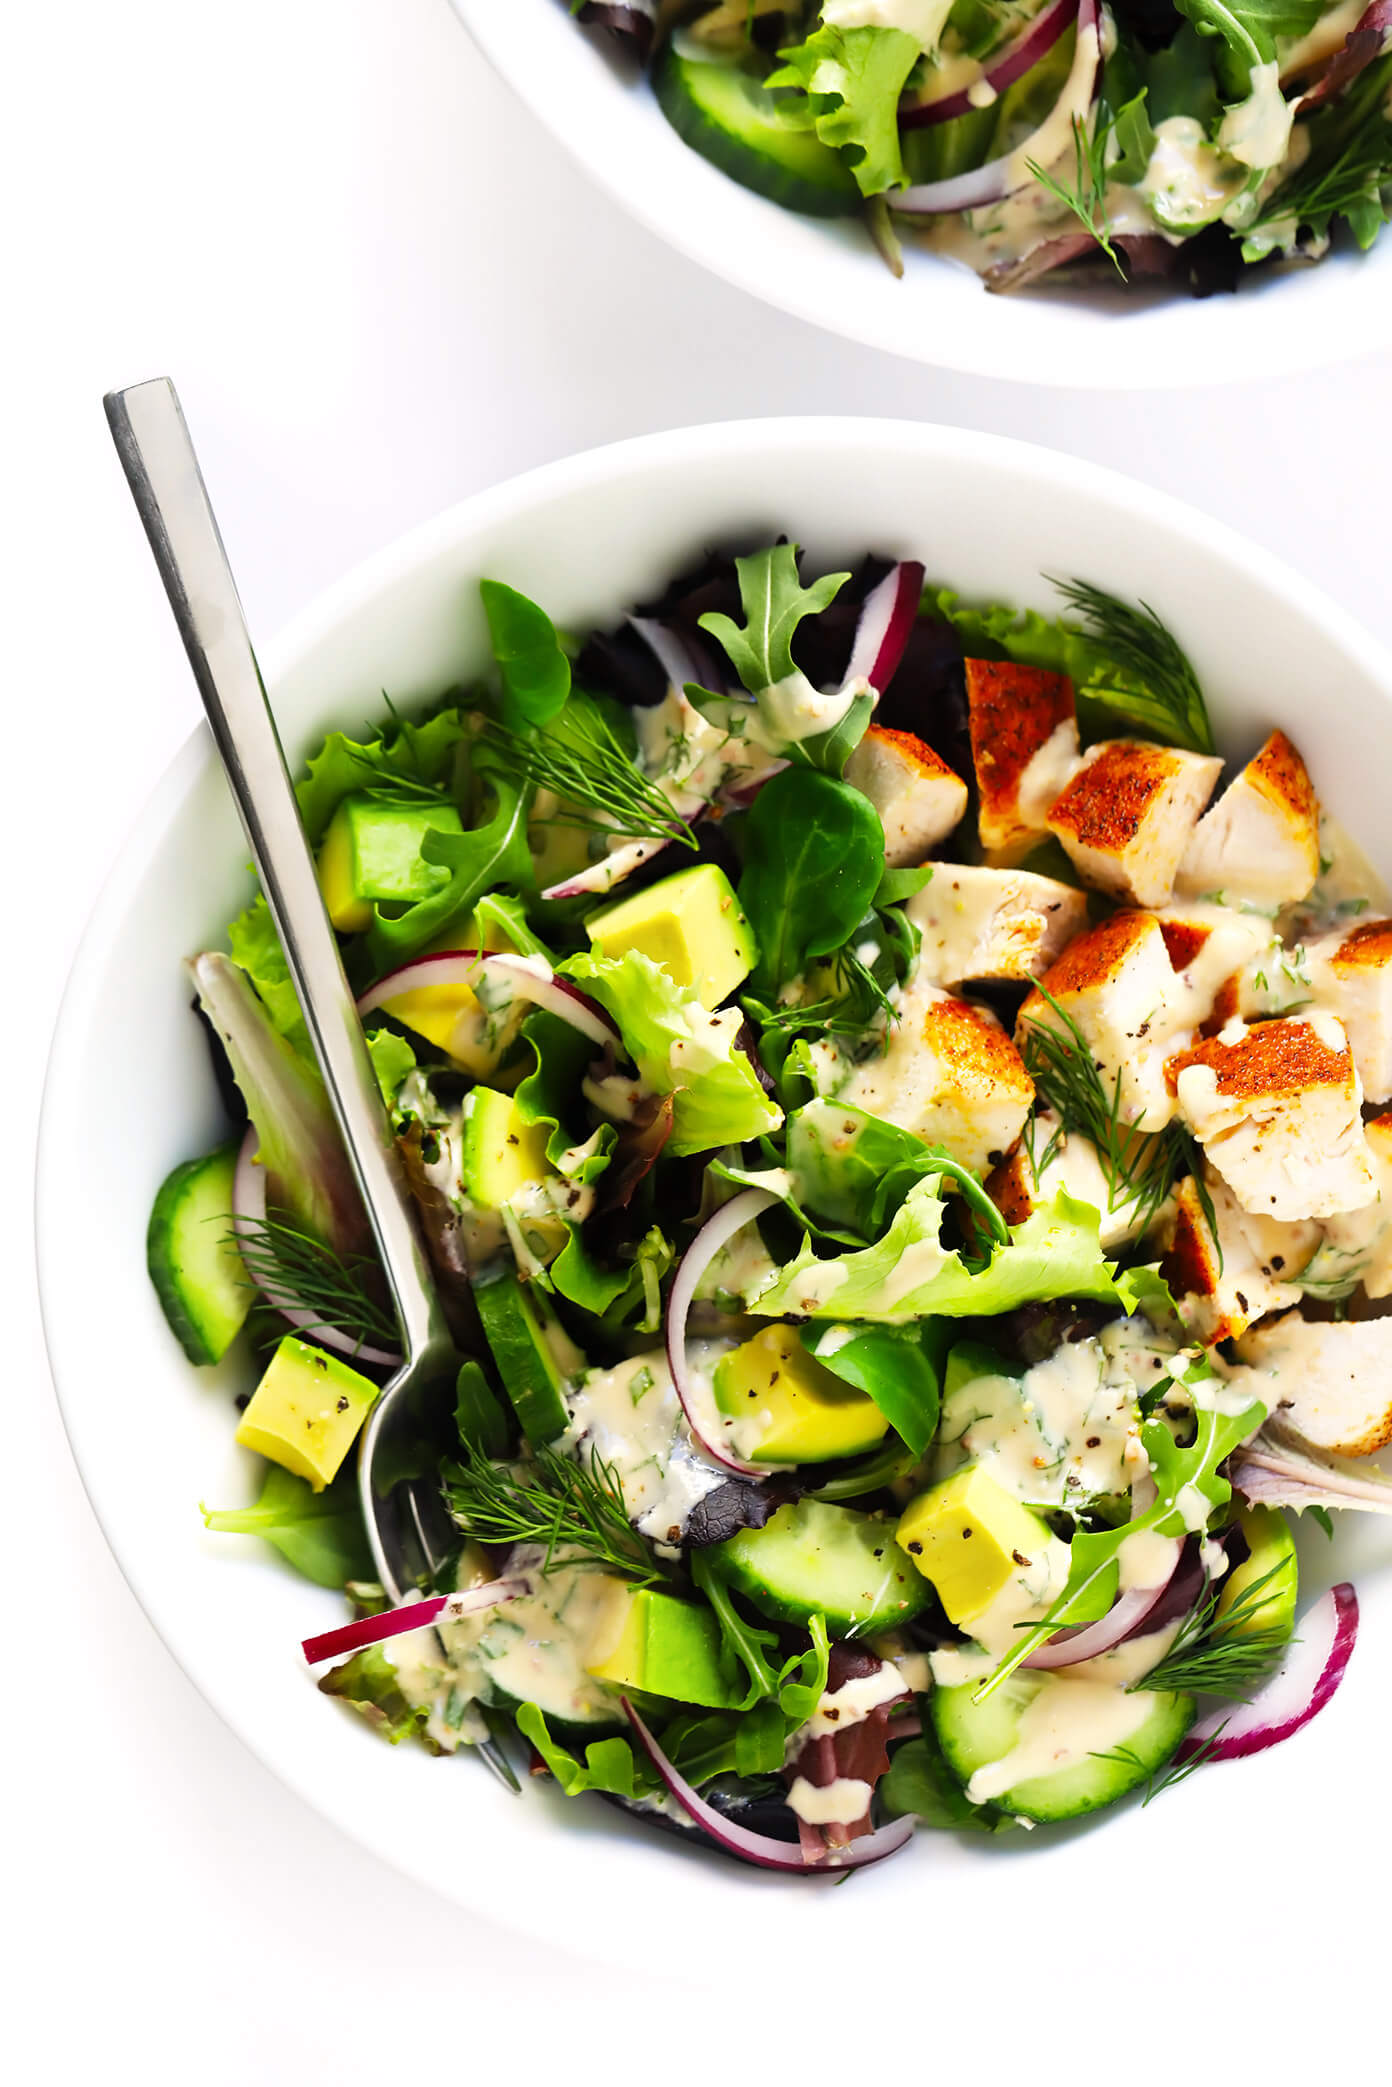 Tahini Ranch Avocado Chicken Salad